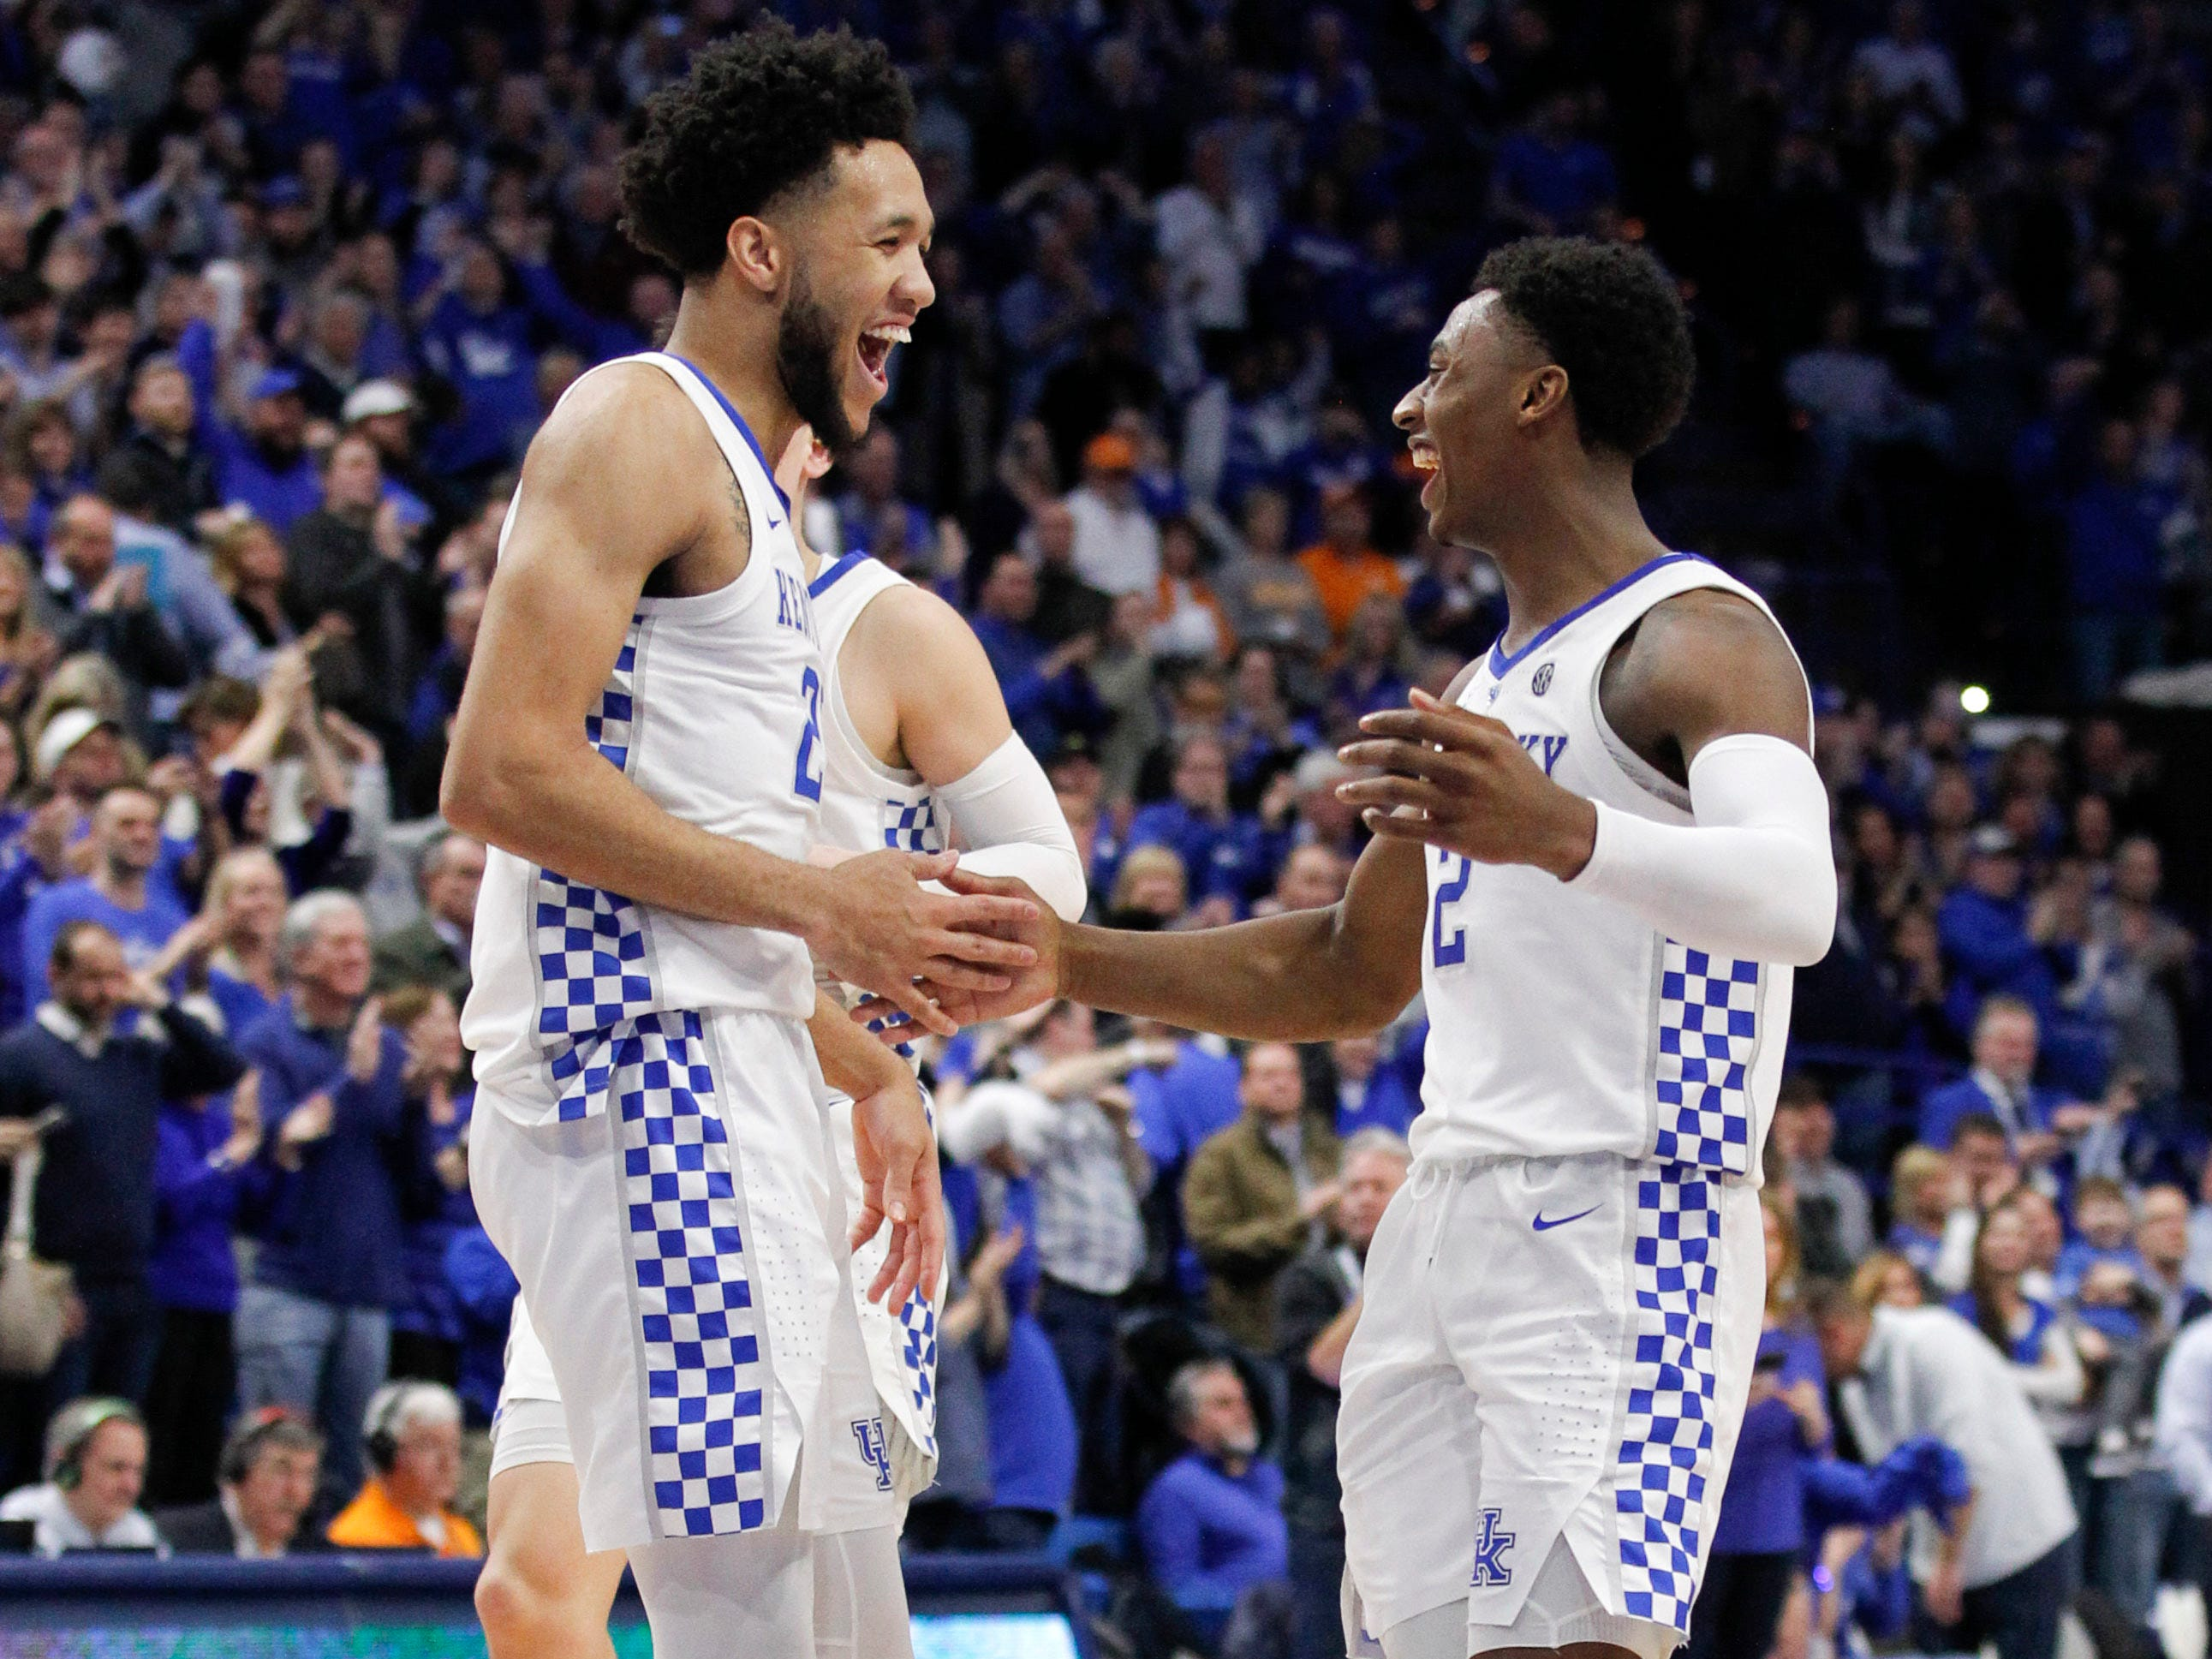 Ashton Hagans (2) and E.J. Montgomery (23) celebrate a big second-half bucket.